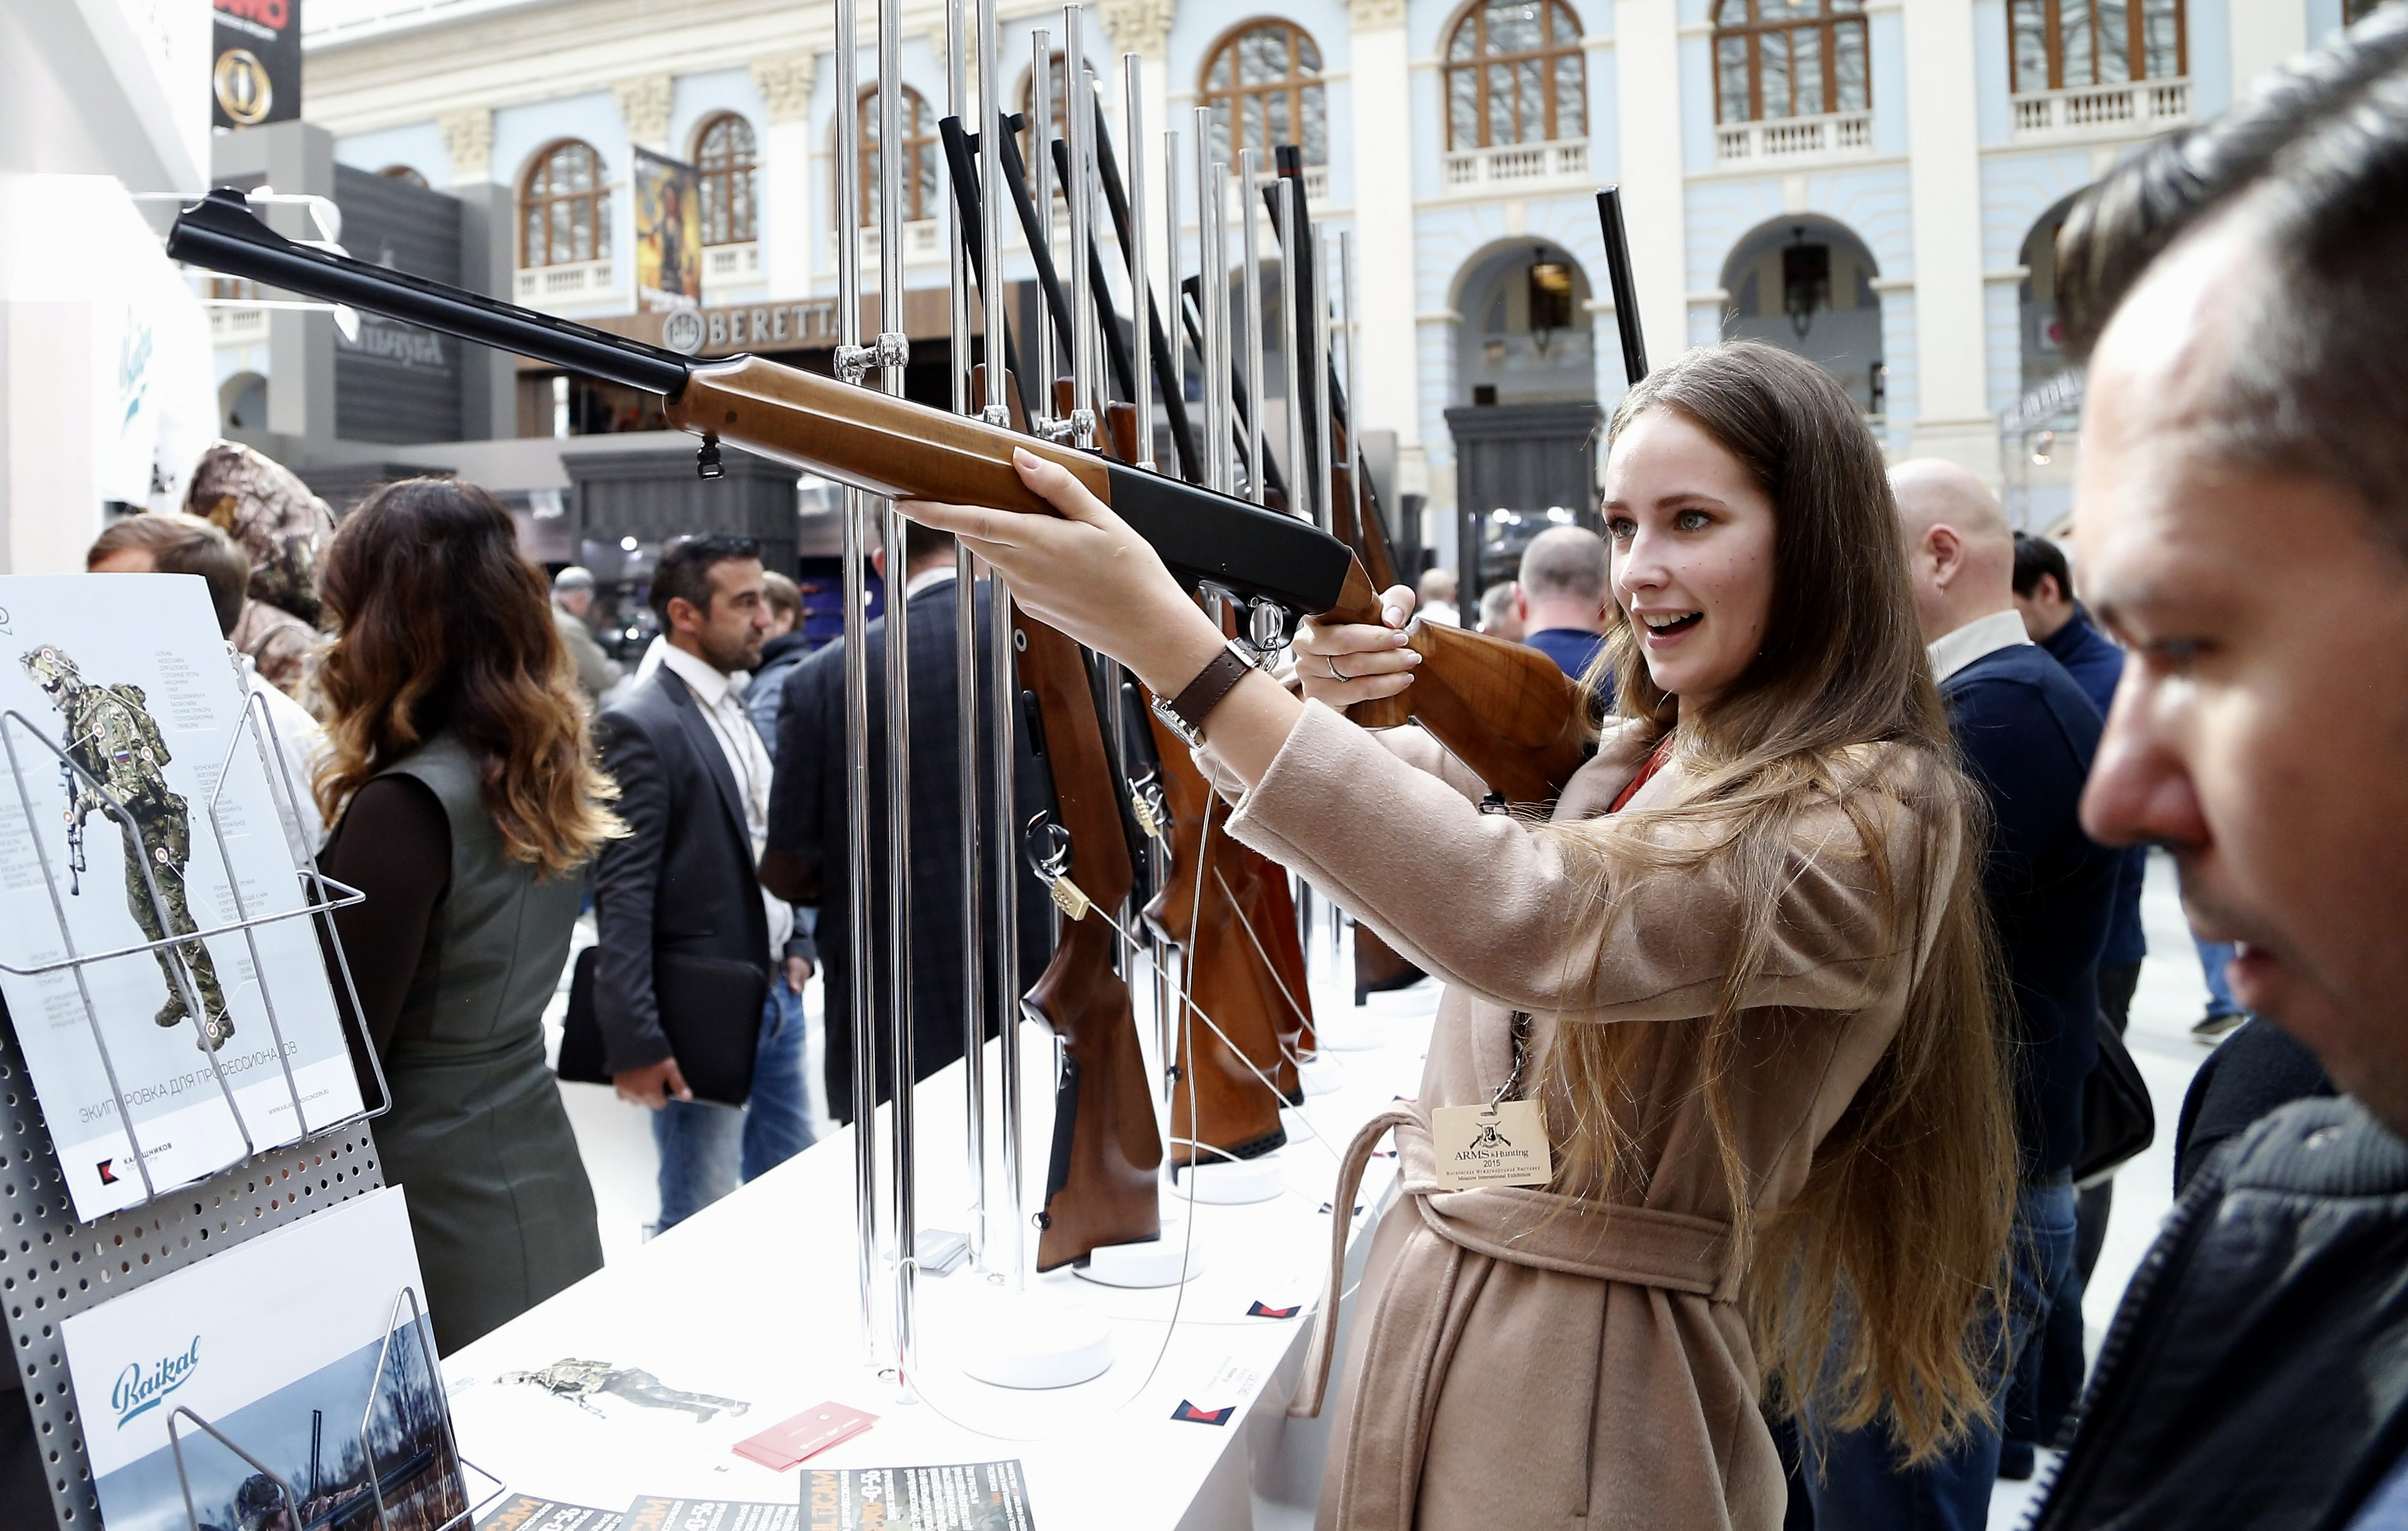 A visitor aims with a rifle on display at the Kalashnikov Grouppavilion during the ARMS & Hunting 2015 International Exhibition atthe Gostinniy Dvor exhibition centre in Moscow, Russia.